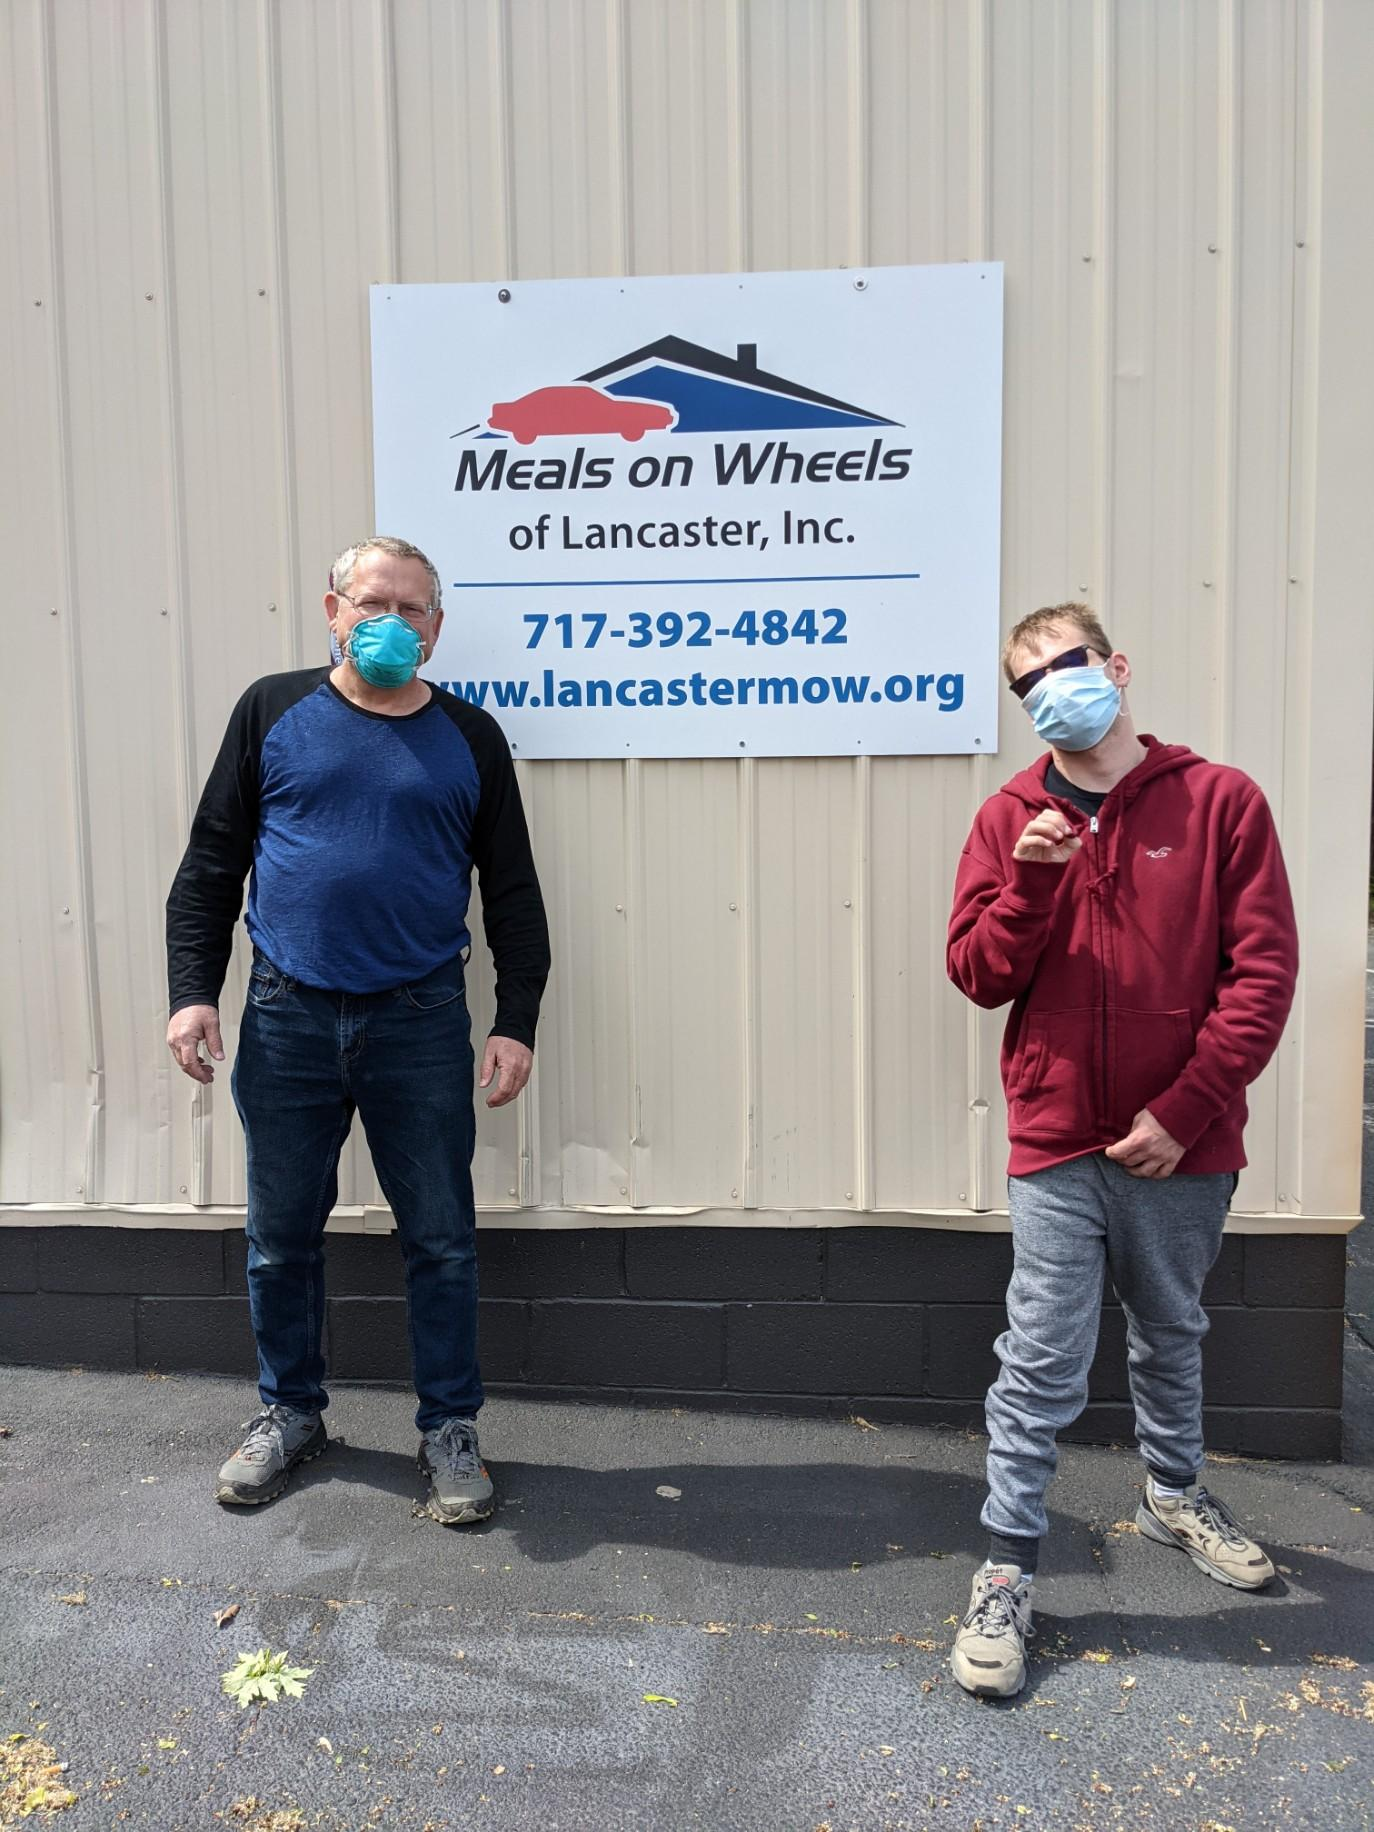 meals on wheels volunteers standing in front of a sign